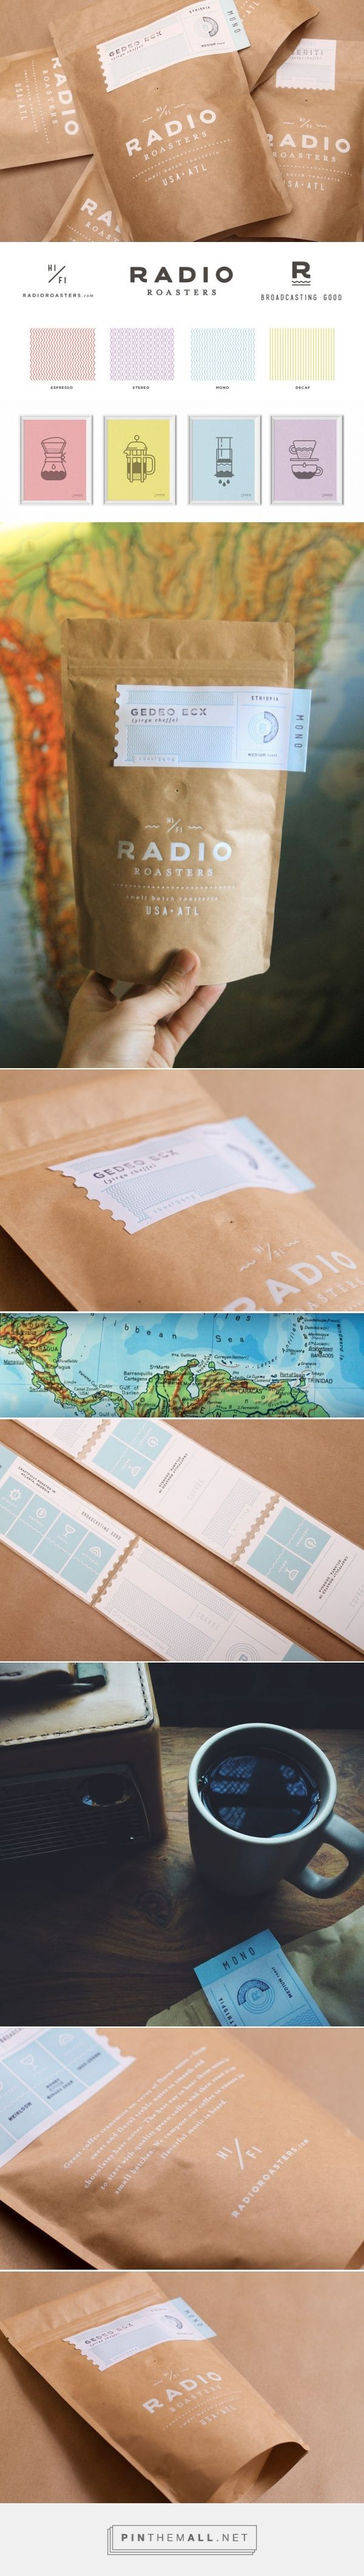 Radio Roasters Coffee packaging designed by TNKR Design (USA)